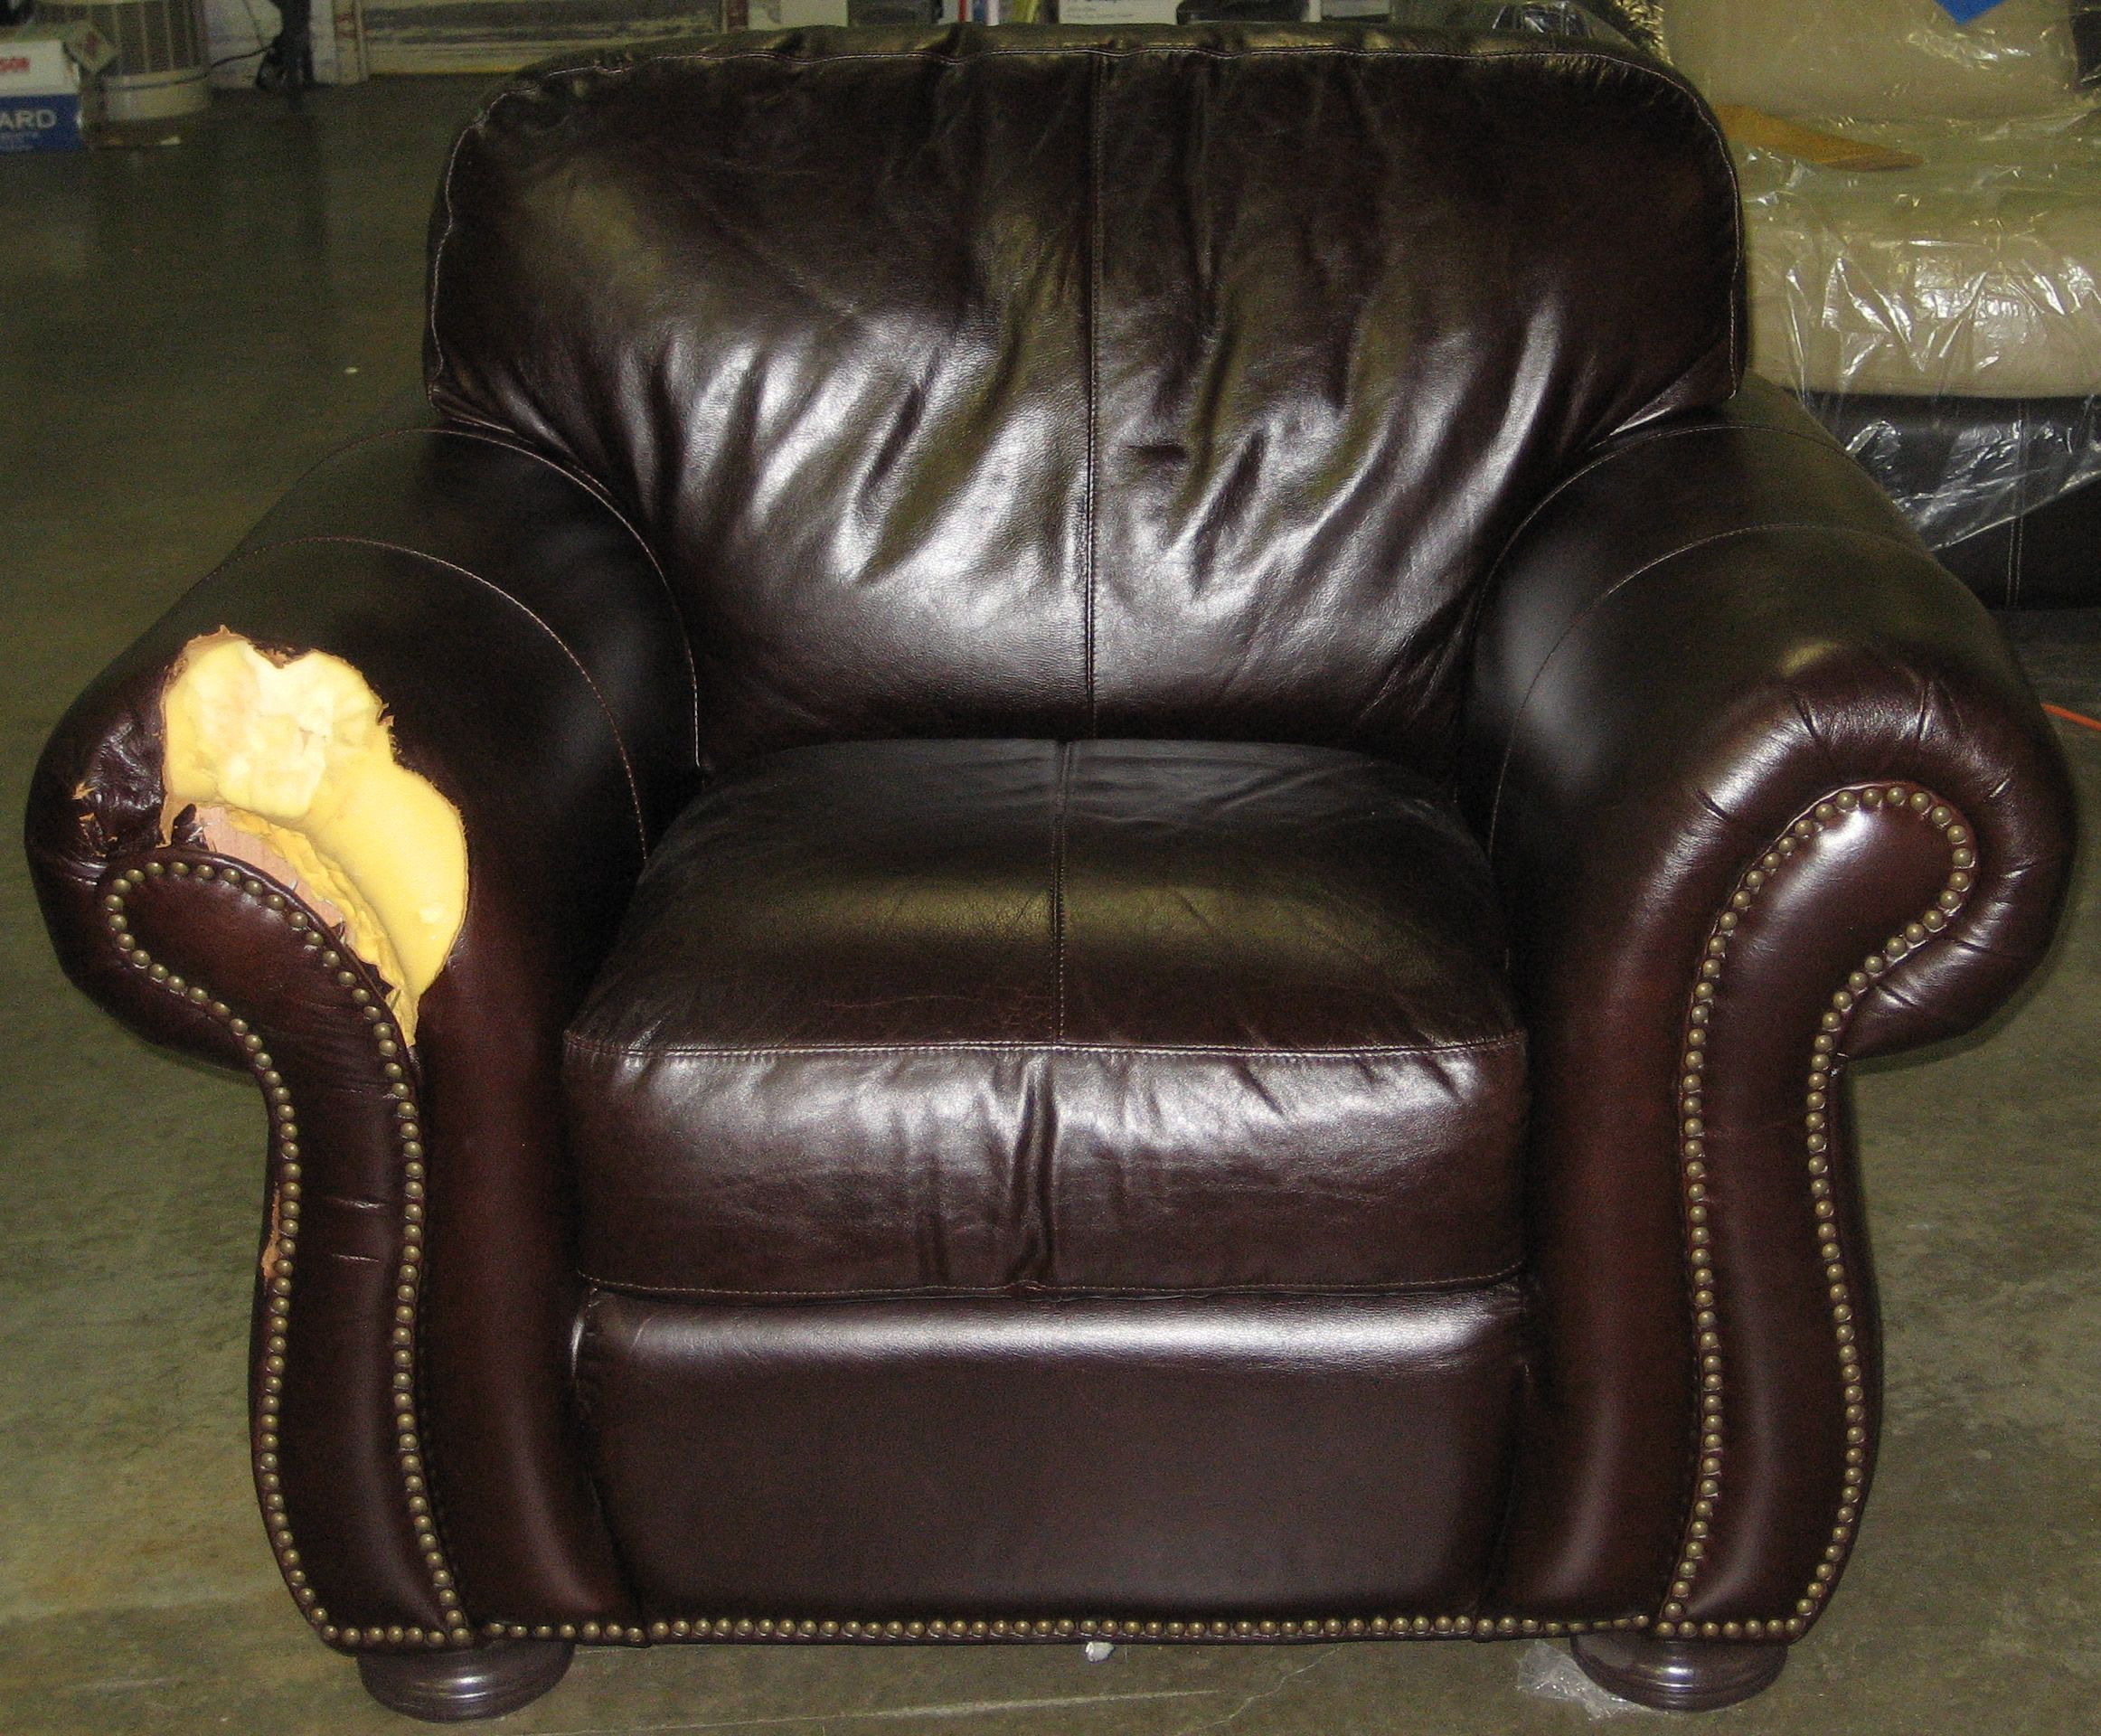 Sofa Covers Leather Couches | Http://ml2r.com | Pinterest | Leather  Couches, Sofa Covers And Couch